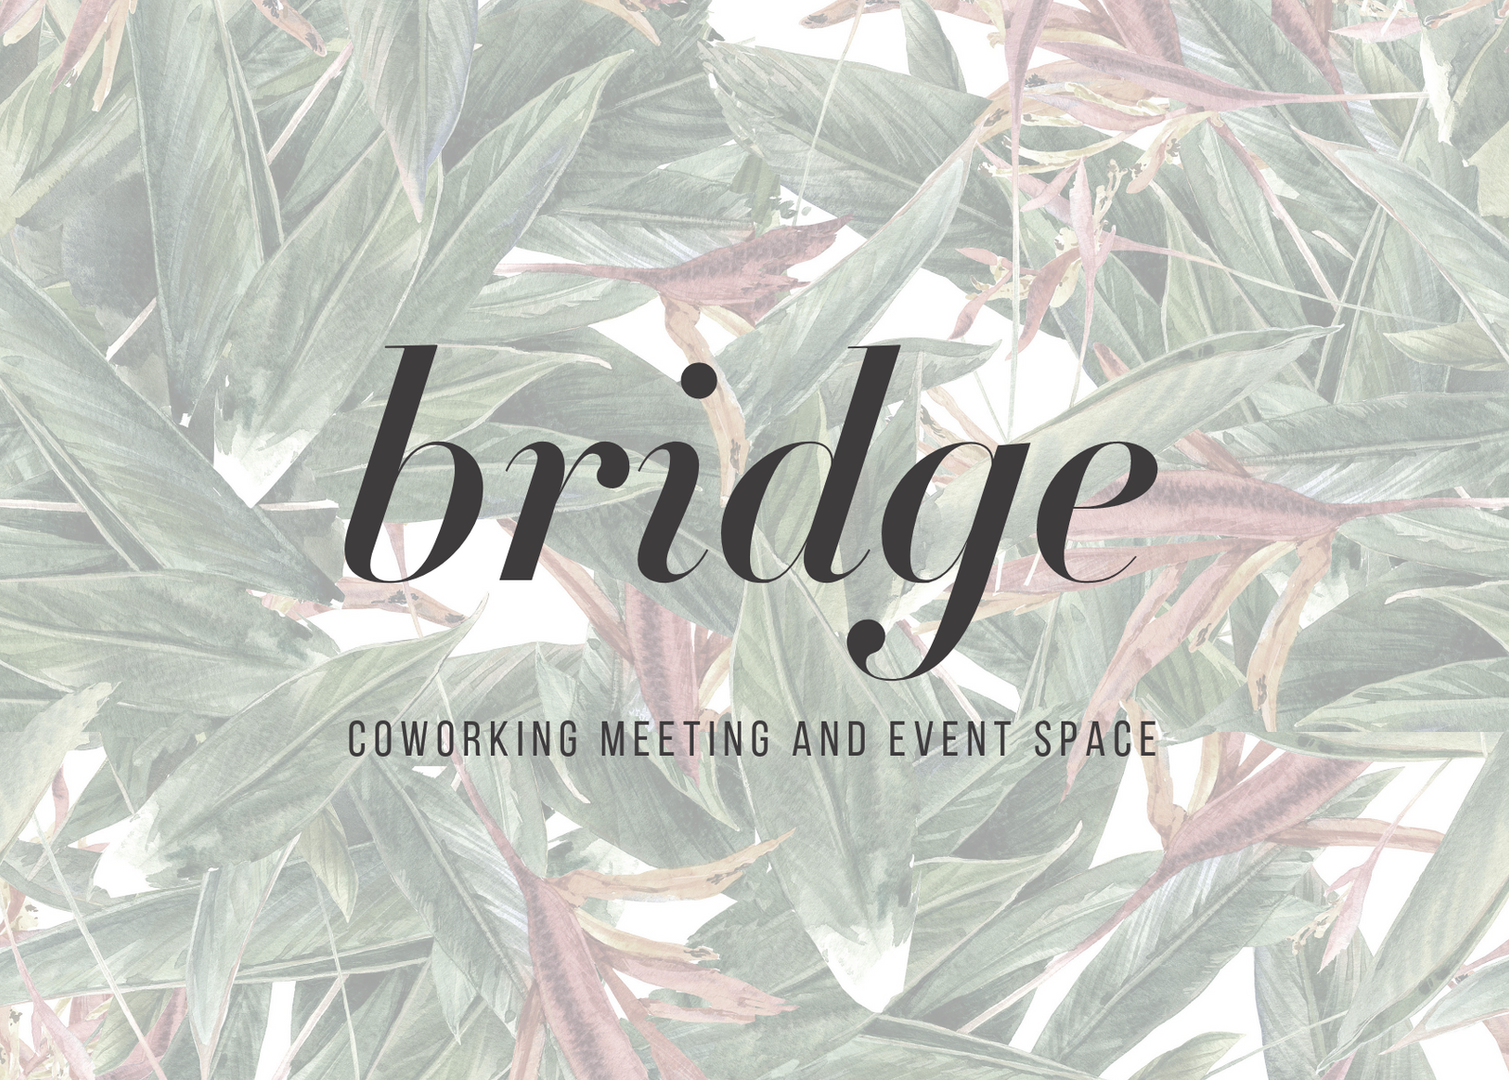 BRIDGE COWORKING MEETING AND EVENT SPACE